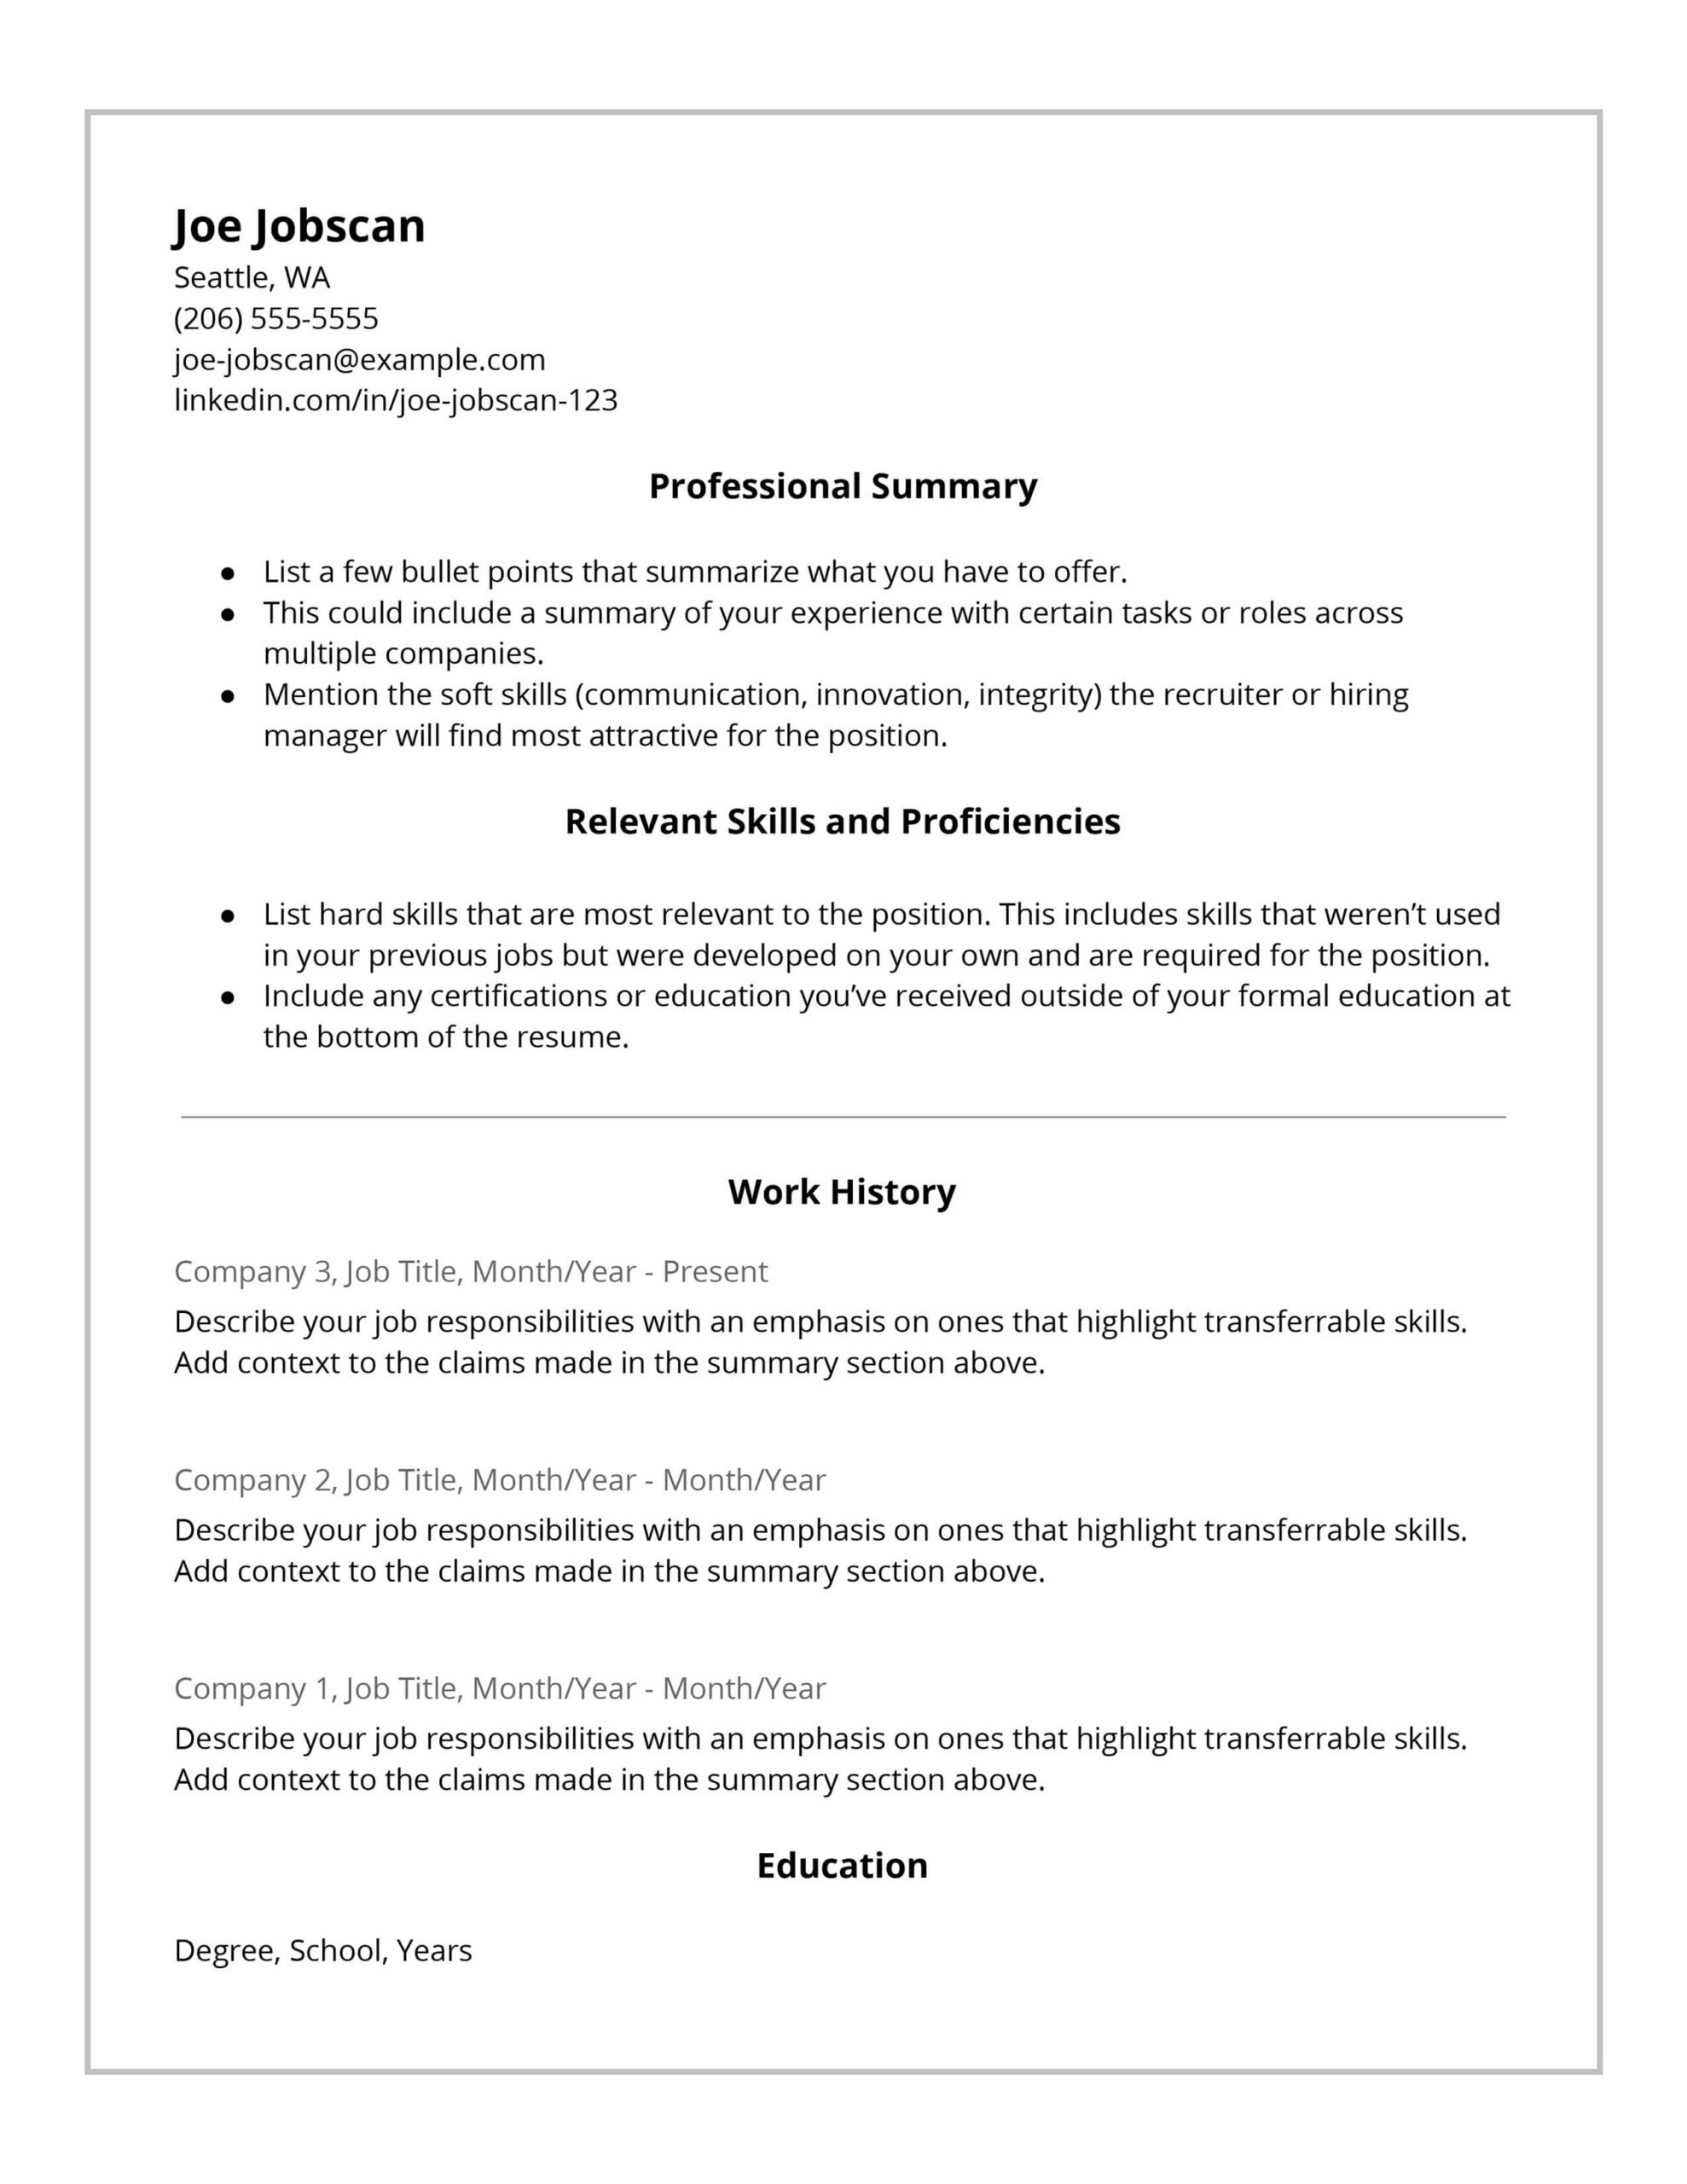 recruiters hate the functional resume format here example hybrid template reply email for Resume A Functional Resume Example